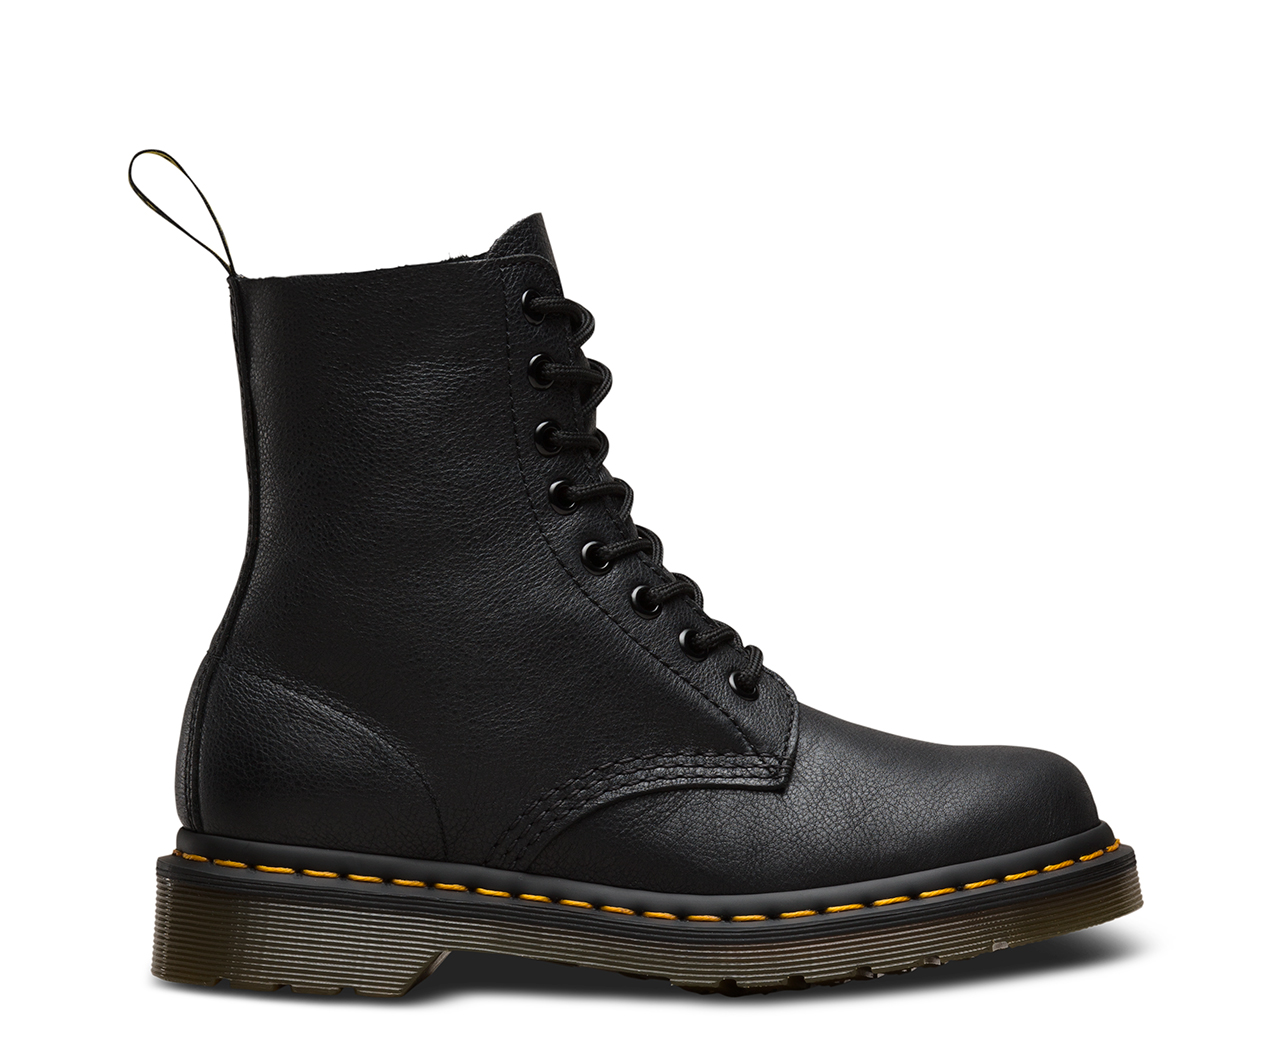 DR MARTENS AMBER LEATHER ZIP UP BIKER STYLE BOOTS - UK 8 / 42